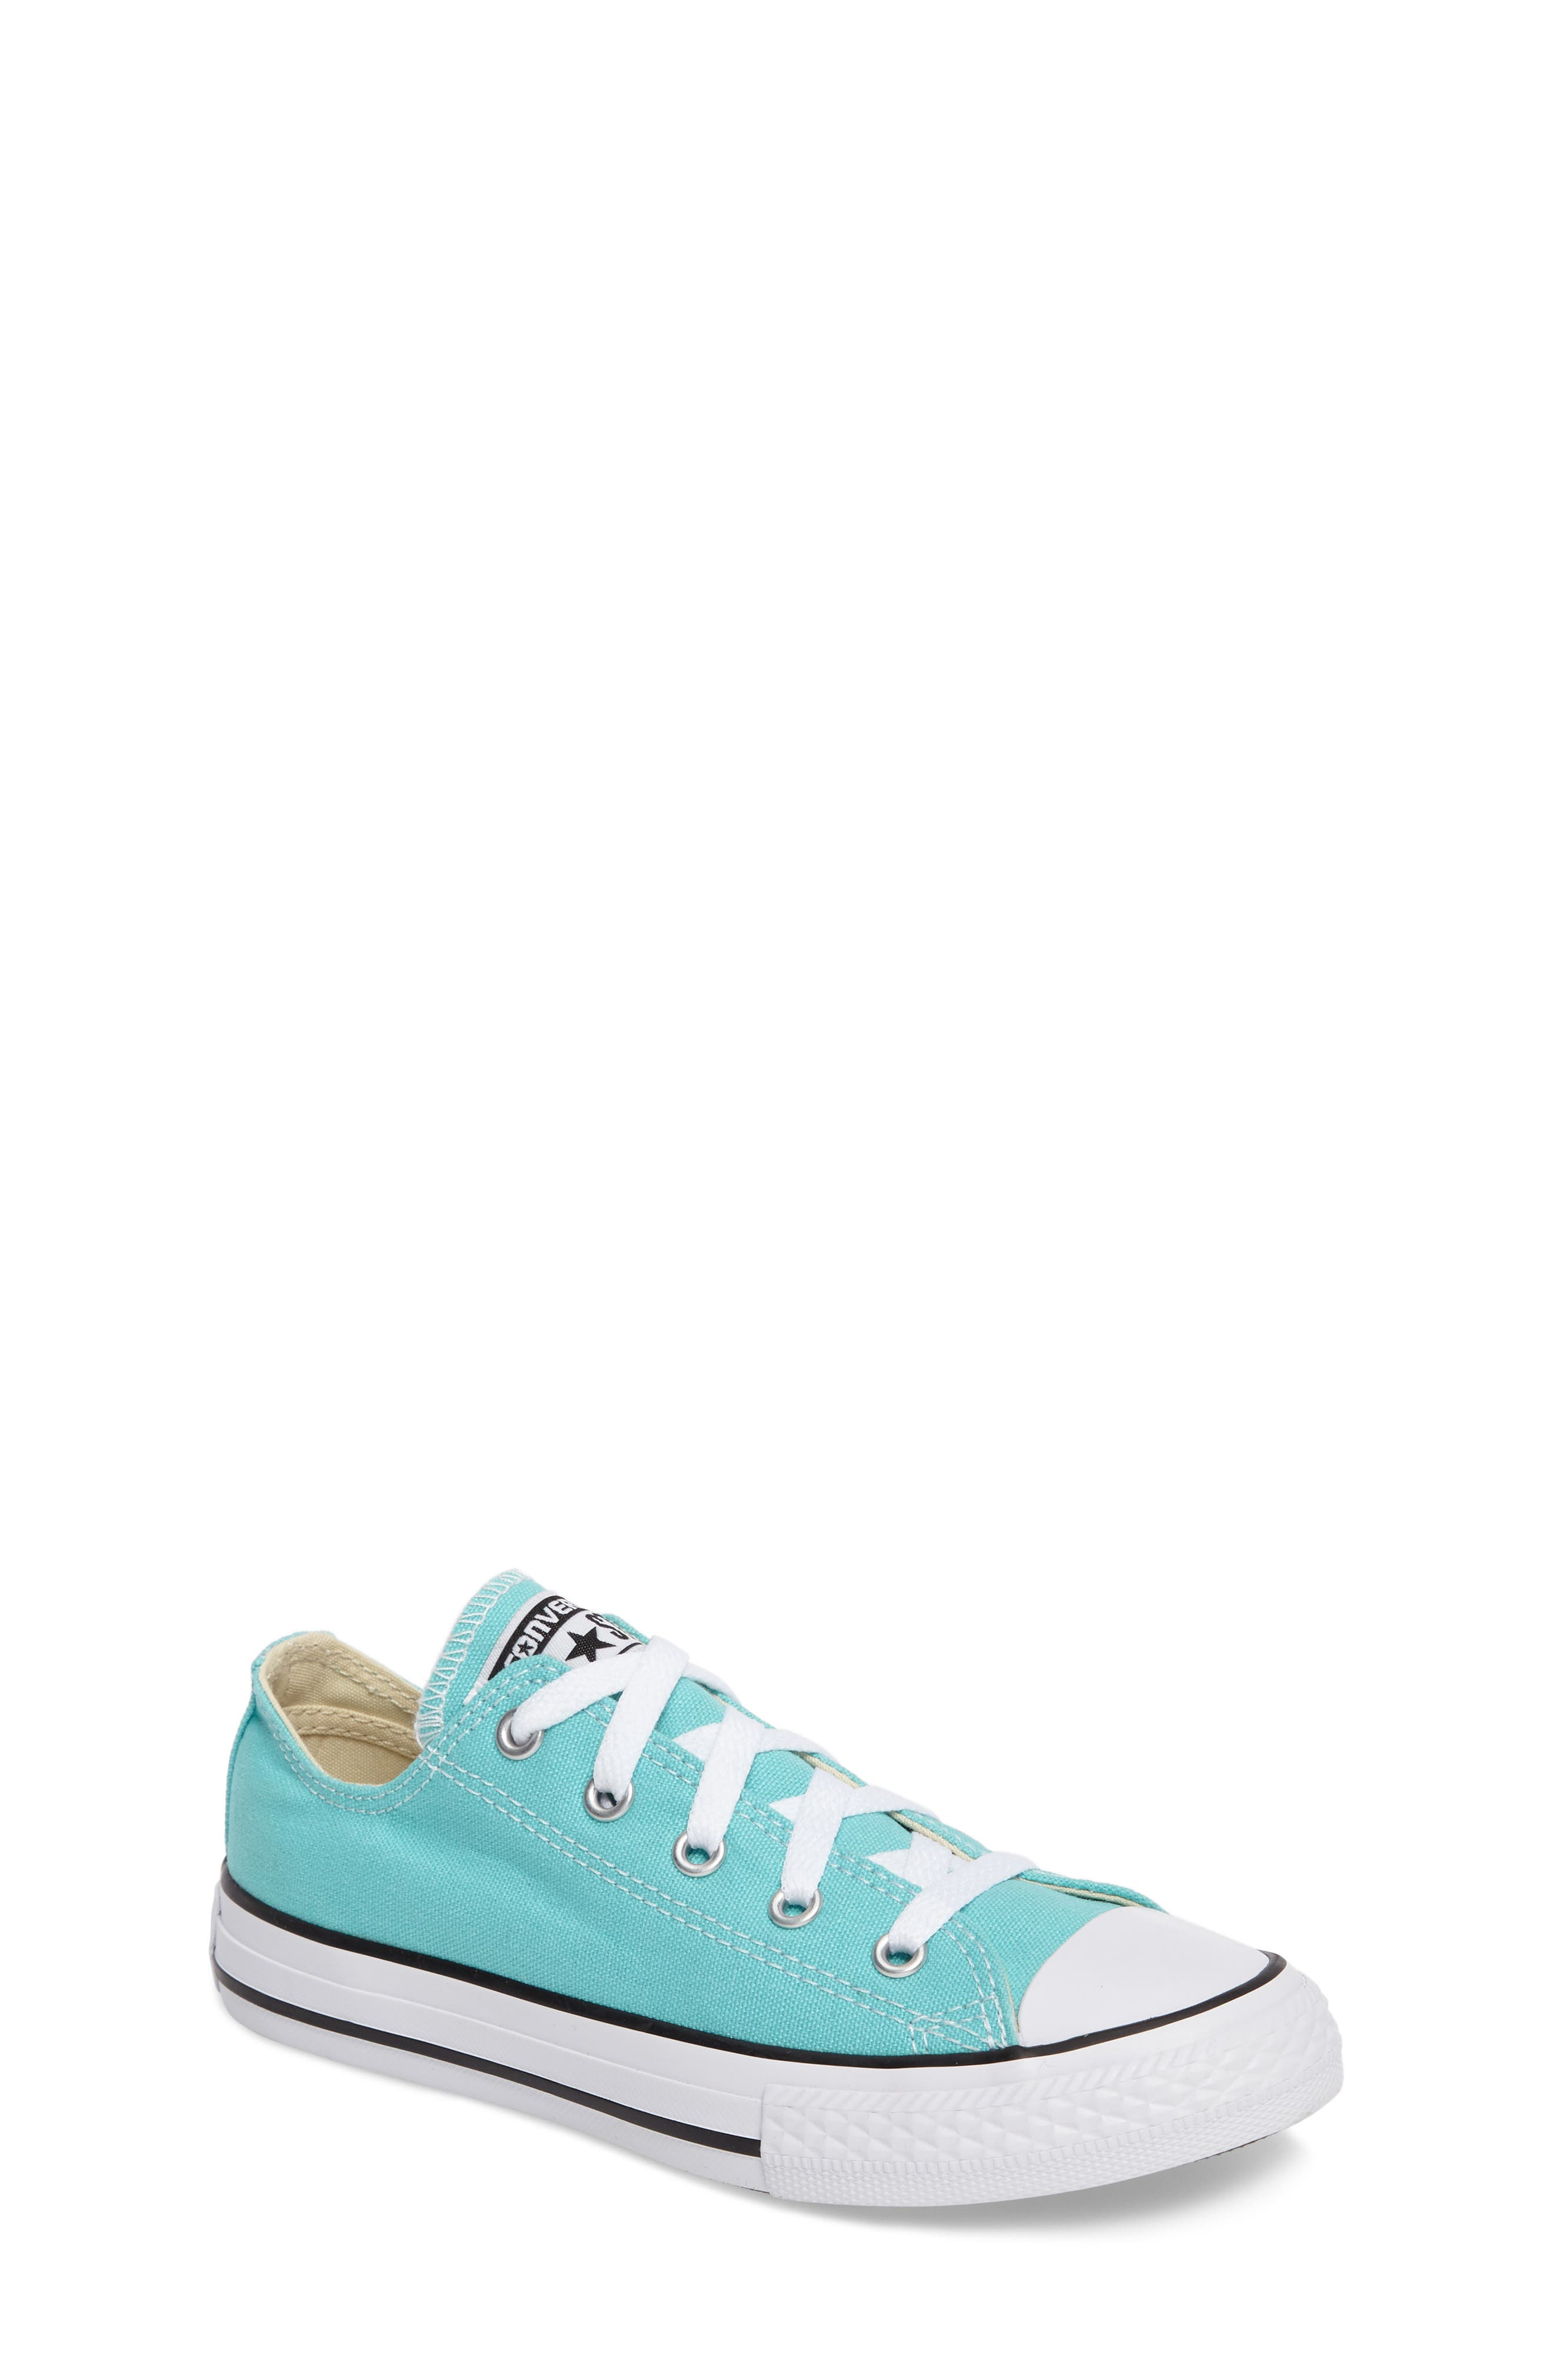 Converse Chuck Taylor® All Star® Low Top Sneaker (Baby, Walker, Toddler & Little Kid)